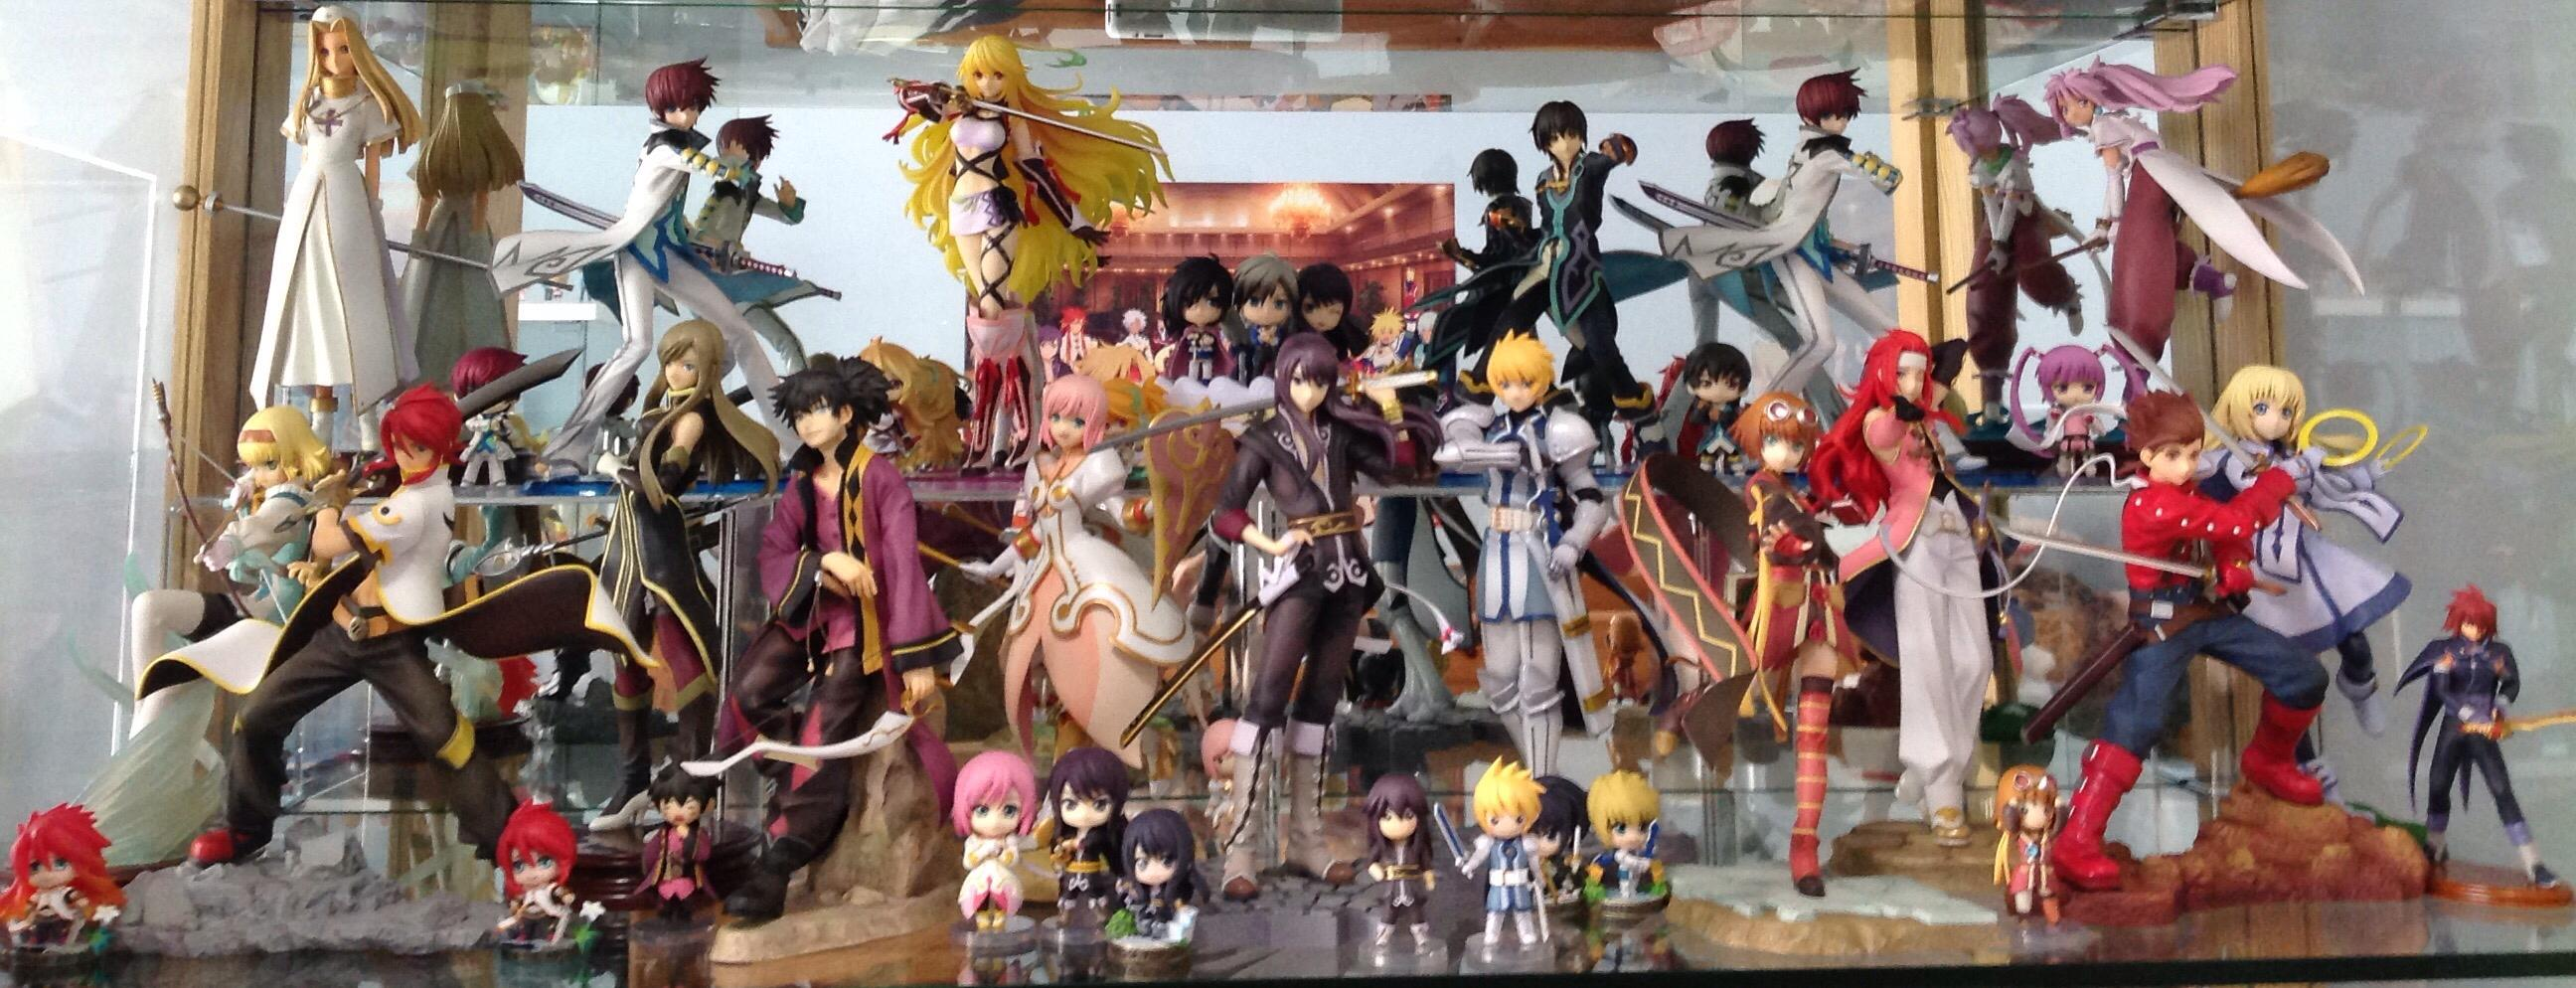 "nendoroid_petit kotobukiya megahouse akatsuki alter good_smile_company banpresto yuri_lowell tales_of_vesperia tales_of_phantasia arche_klaine namco iwamoto_kunihito yuma ichiban_kuji raven tales_of_the_abyss altair flynn_scifo nendoron numakura_toshiaki inagaki_hiroshi mirano taira_hitoshi ogasawara_kento natalia_luzu_kimlasca-lanvaldear nishimura_naoki petit_chara_land rita_mordio fujishima_kousuke teruyuki arai_kyousuke tales_of_xillia jude_mathis milla_maxwell tales_of_symphonia zelos_wilder kratos_aurion estellise_sidos_heurassein tales_of_destiny lion_magnus tear_grants lloyd_irving tales_of_graces asbel_lhant matsuda_model sophie one_coin_figure_series inomata_mutsumi amamiya_hideo arakawa_takahiro rooney kyun-chara_vignette tanaka_sen'u tales_of_xillia_2 ludger_will_kresnik nendoroid_petit:_""tales_of""_series petit_chara_land_tales_of_series_puchitto_kenshi-hen matsuken petit_chara_land_""tales_of""_series_puchitto_issho-hen otoyama_houjun mint_adenade ichiban_kuji_tales_of_series_20th_anniversary tetsumori_nanami luke_fone_fabre bandai_namco_entertainment_inc. collet_brunel tales_of_symphonia_one_coin_figure_series"